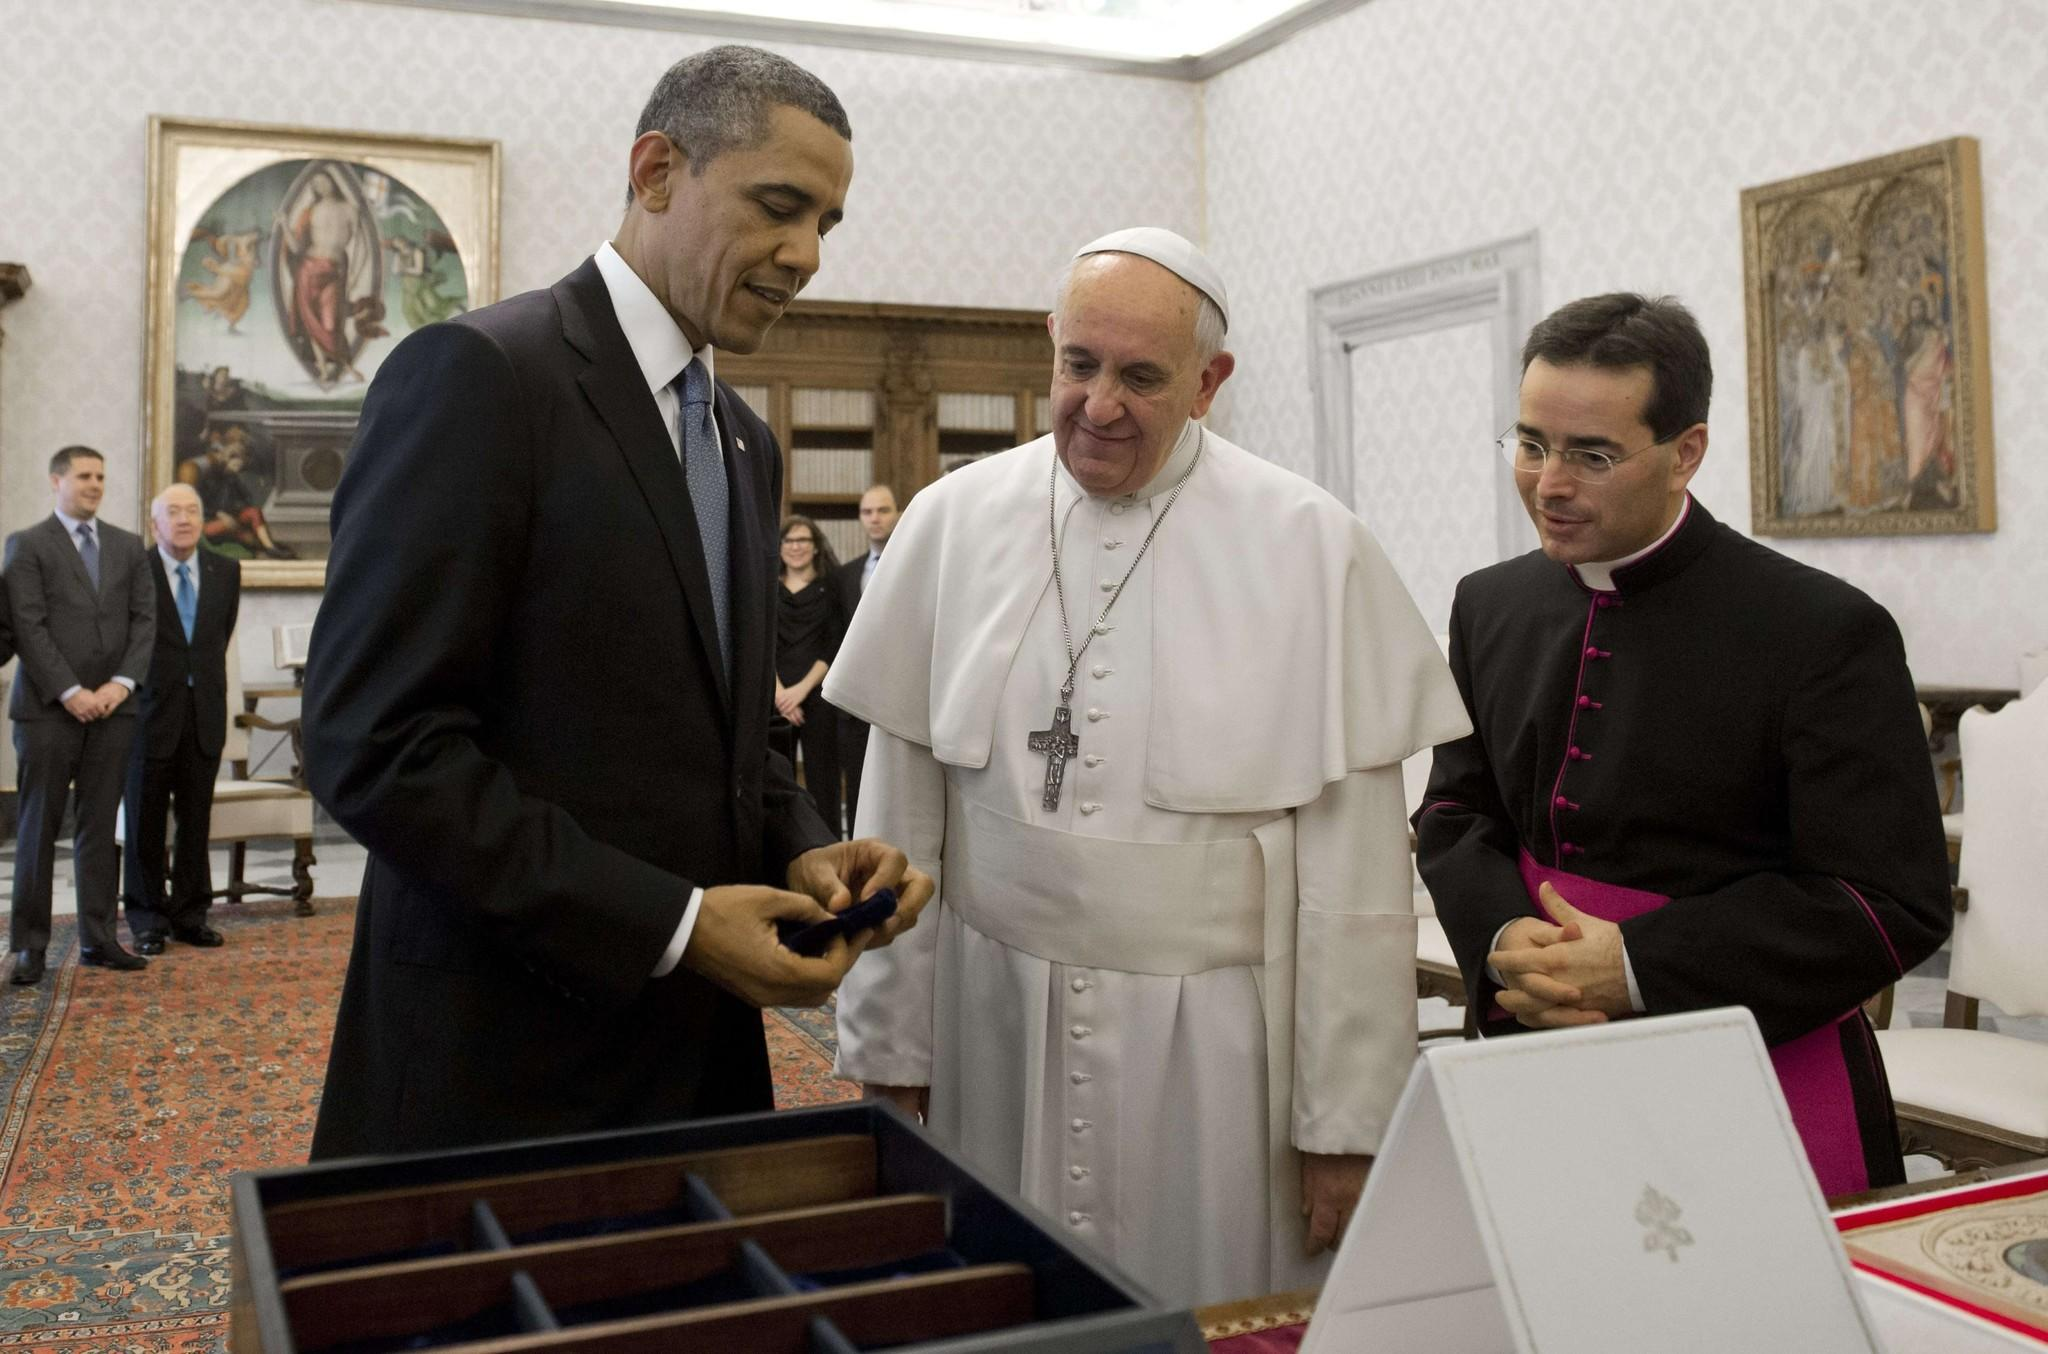 President Barack Obama presents Pope Francis with a custom-made seed chest featuring a variety of fruit and vegetable seeds from the White House garden during a private audience on March 27, 2014 at the Vatican. The chest was made of wood that came from the Baltimore Basilica.